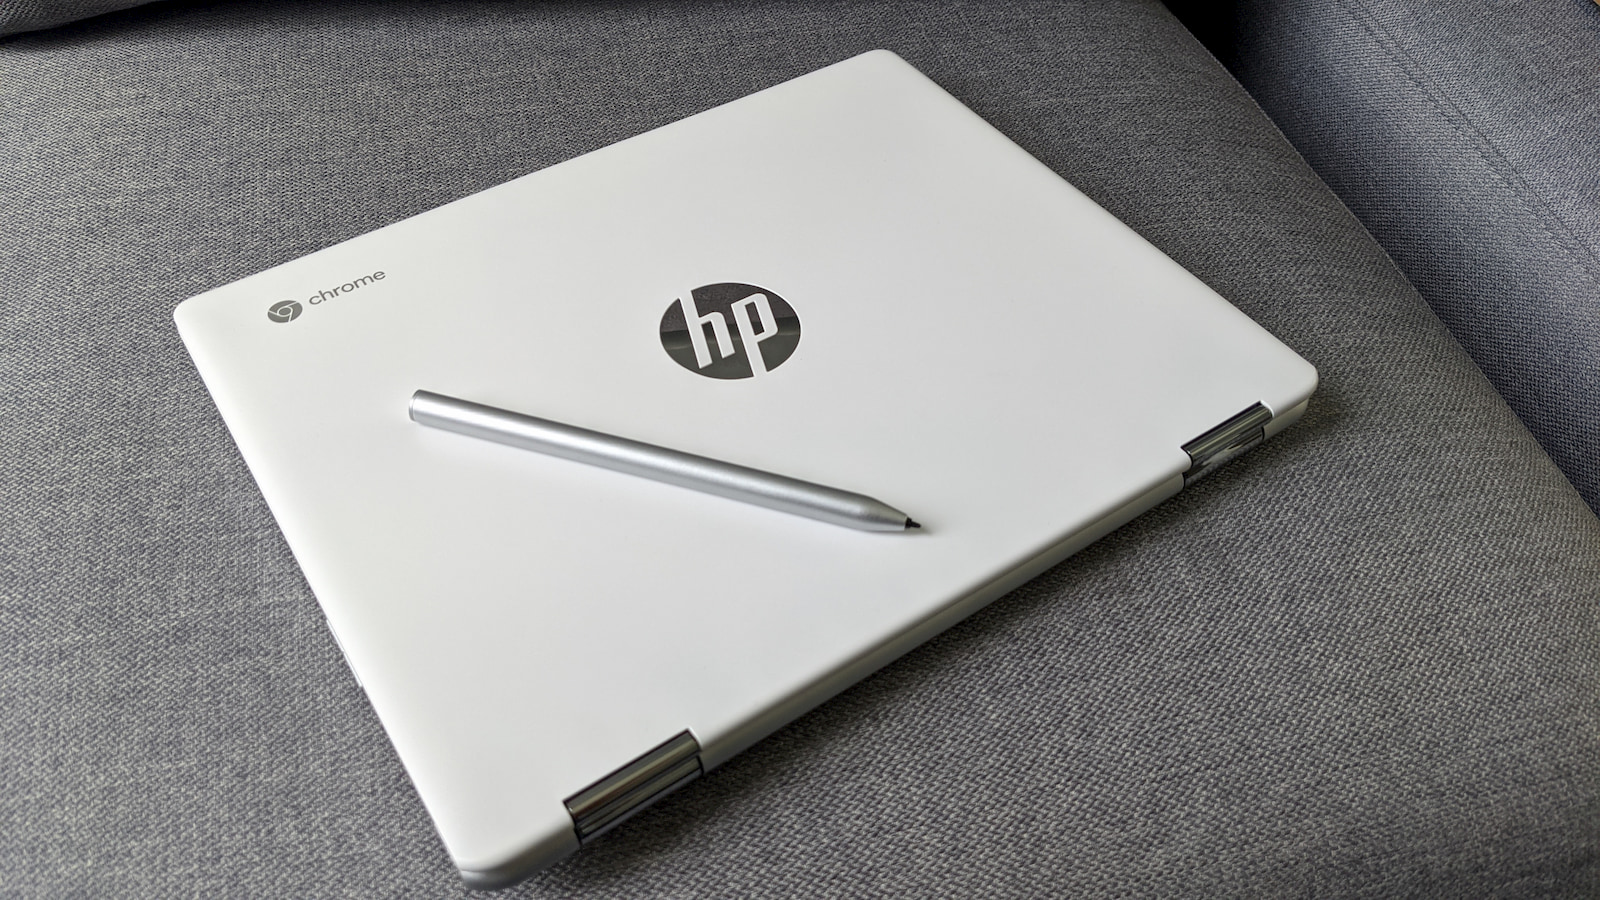 HP's rechargeable USI stylus is finally available for purchase